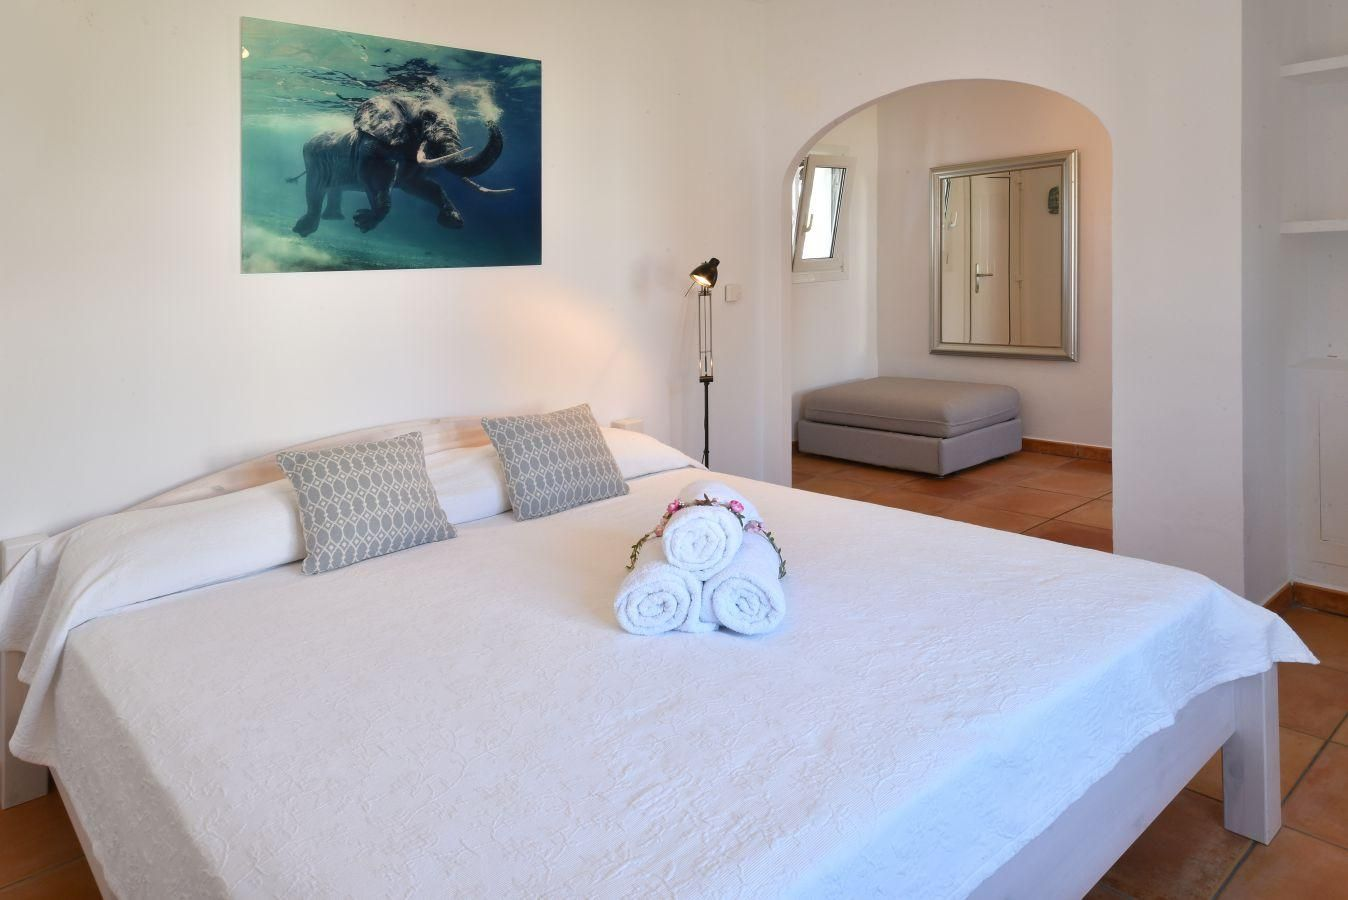 Schlafzimmer Set Palma Villa Goleta 6 In Cala D Or Mallorca Southeast For 6 Persons To Rent